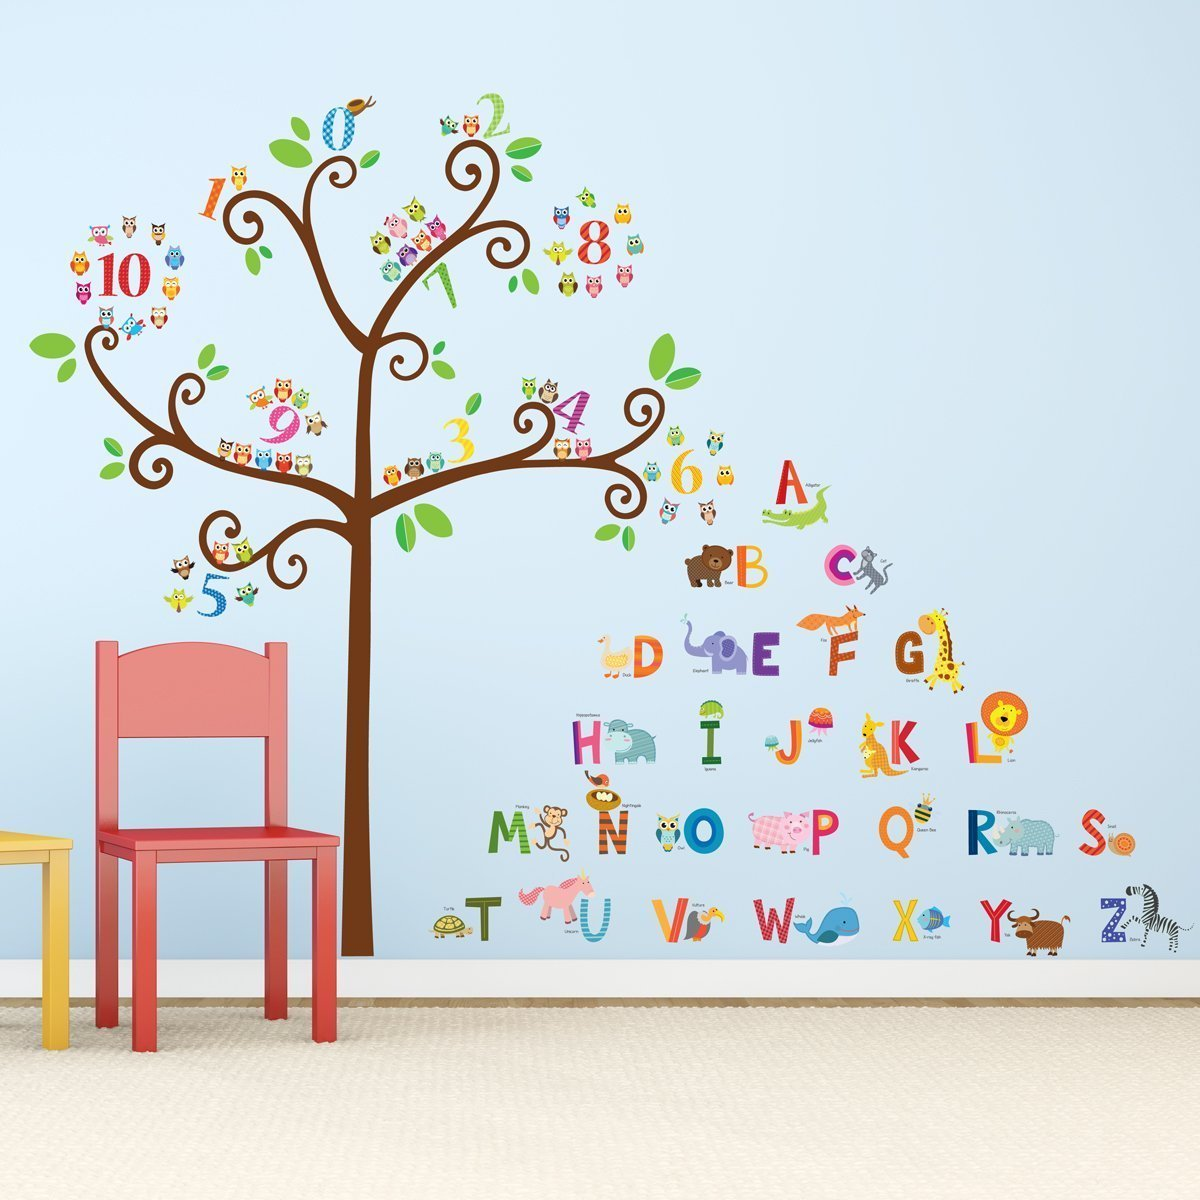 MOQ 500 4C Printing Kids Decoration Pvc Colorful Wall Stickers Tree Home Decor